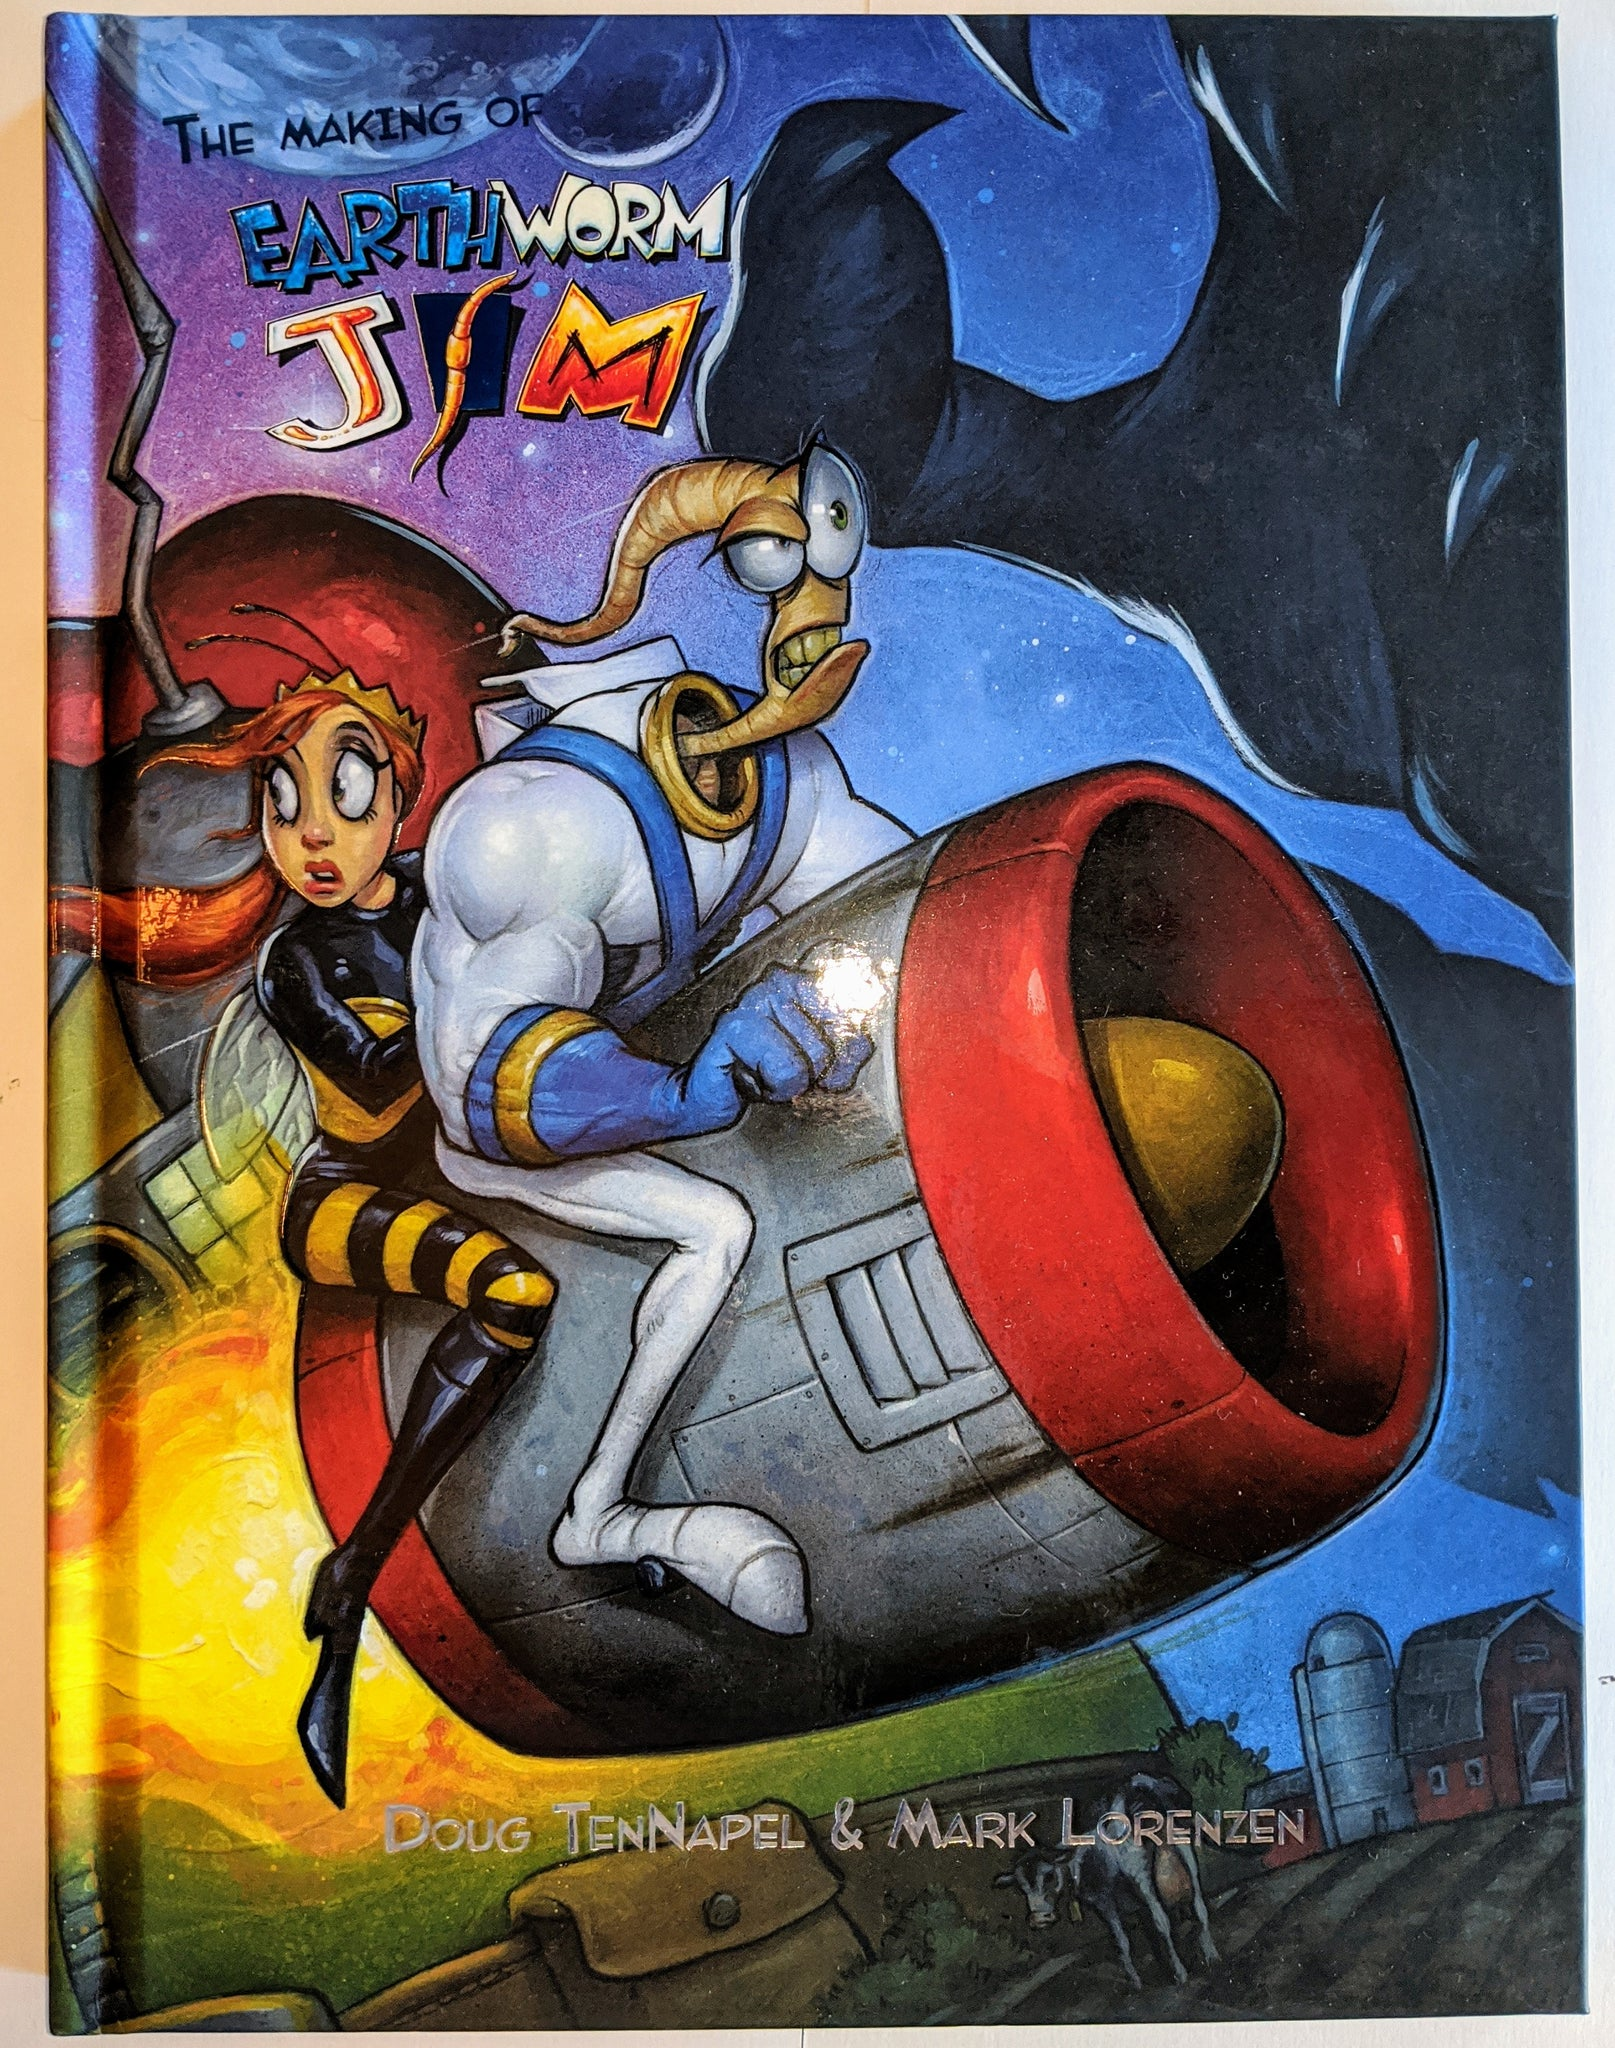 The Making Of Earthworm Jim